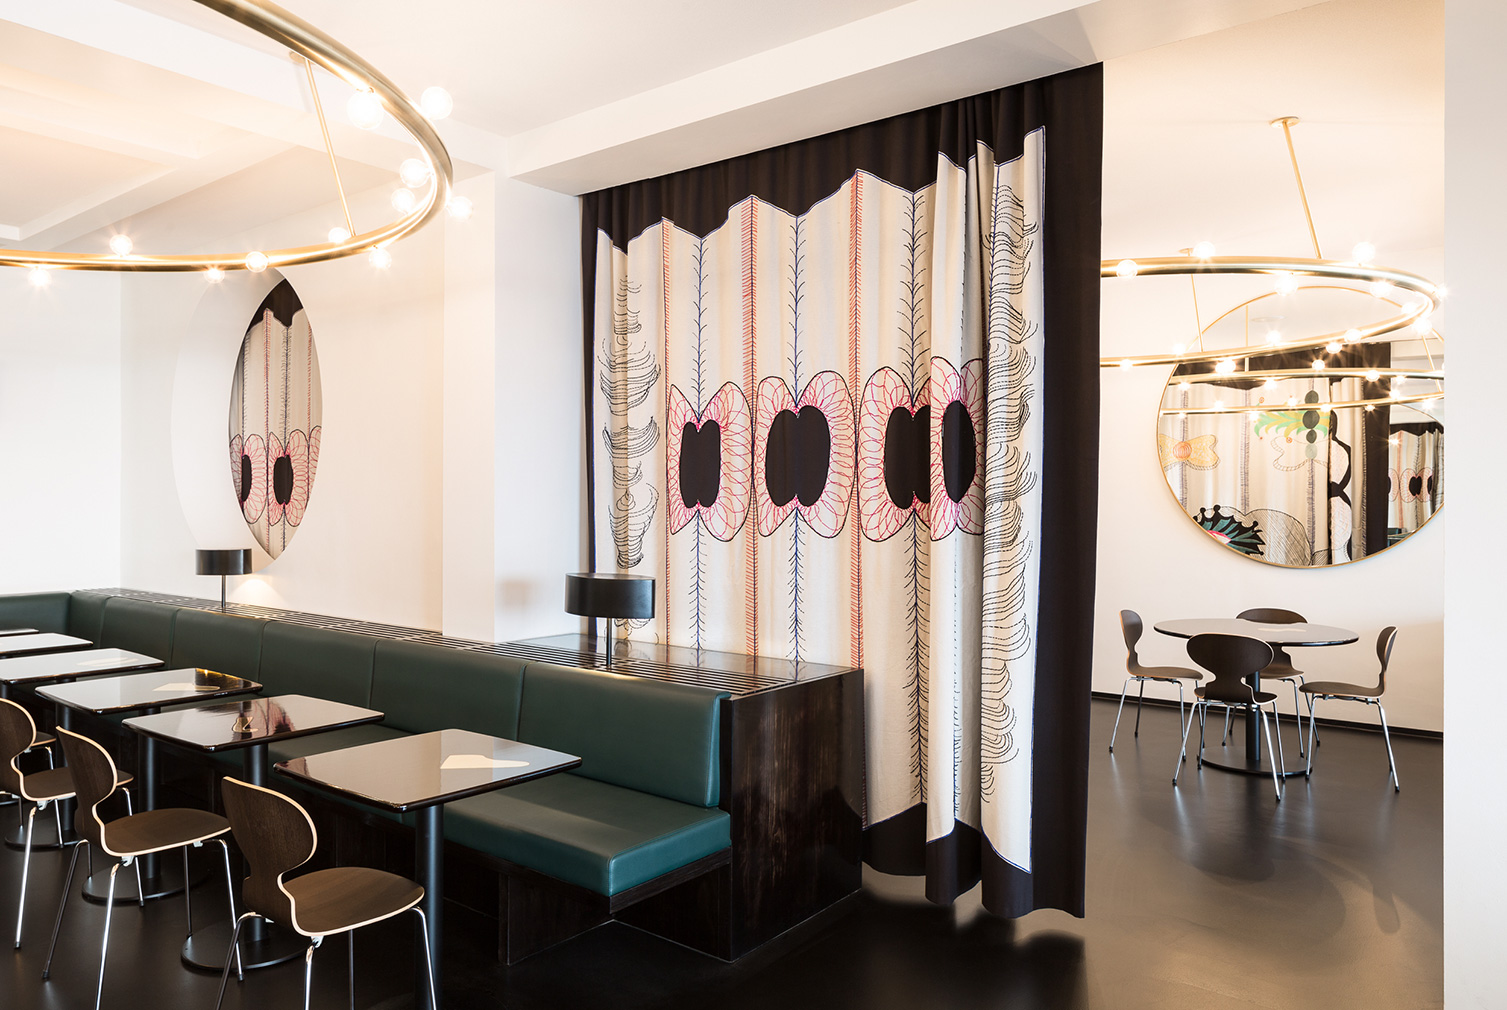 Art deco style victor caf opens in brussels bozar arts for Art deco carrelage